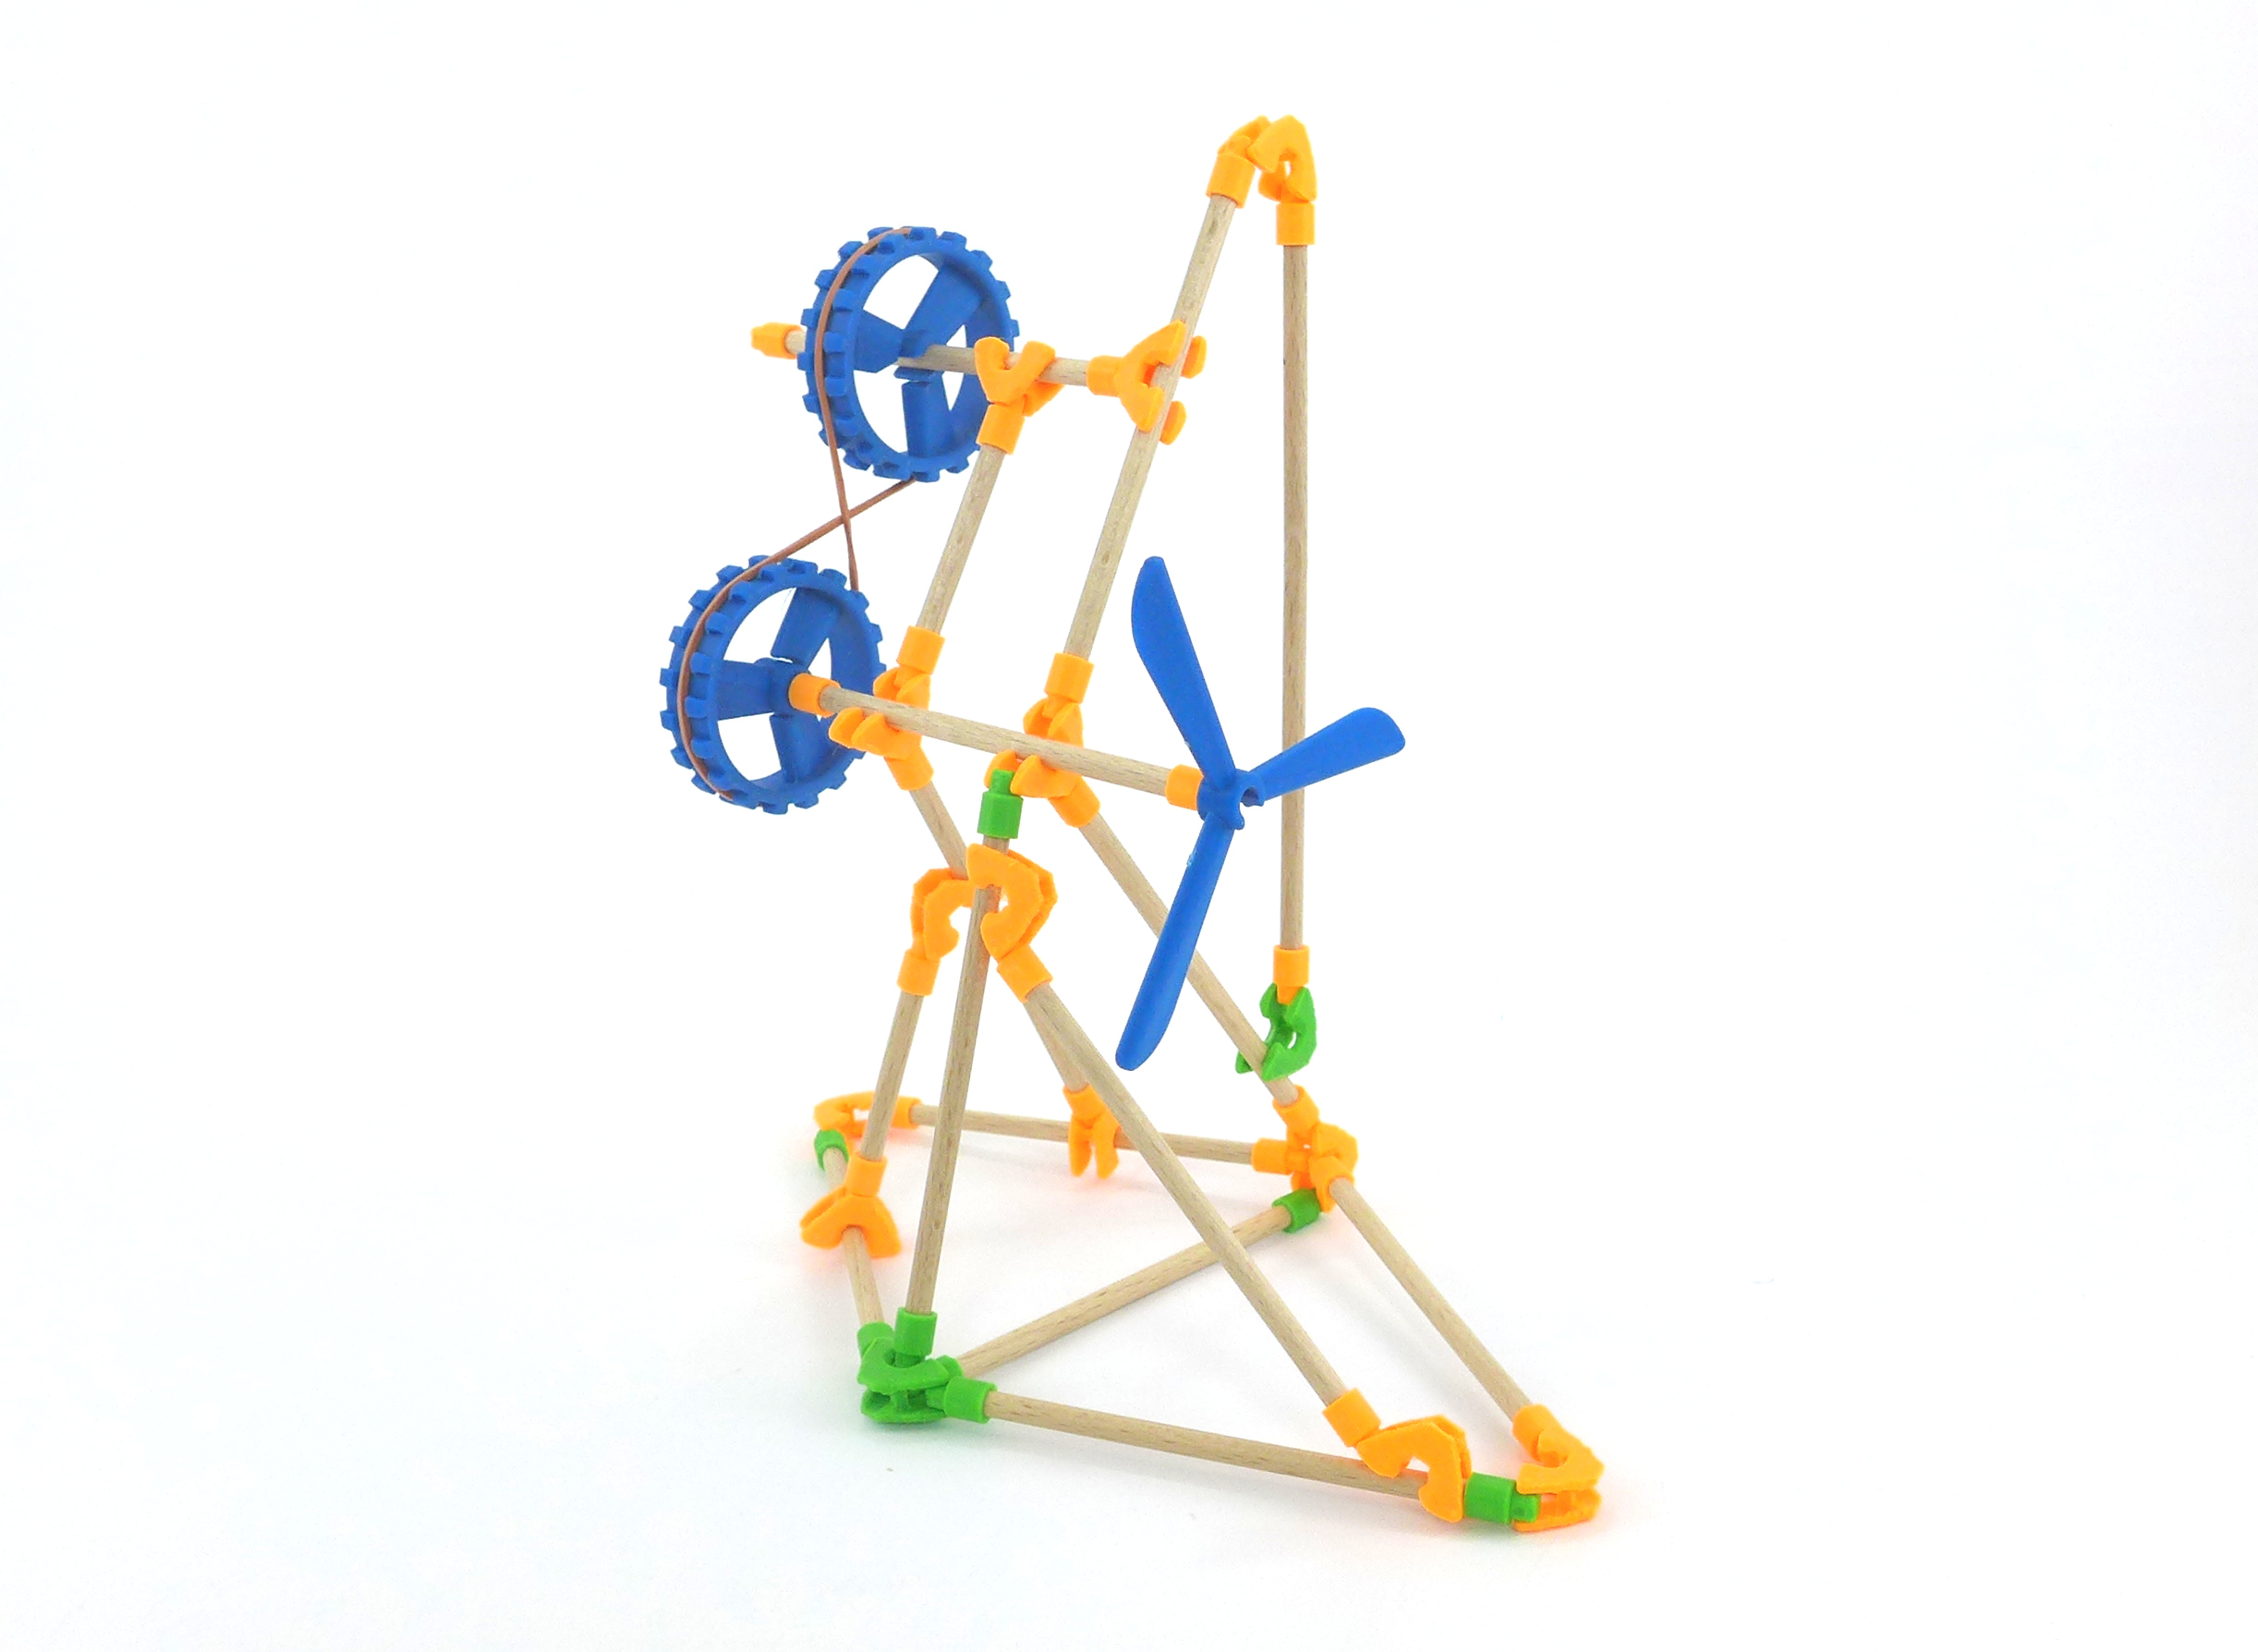 Movements possible with pulleys